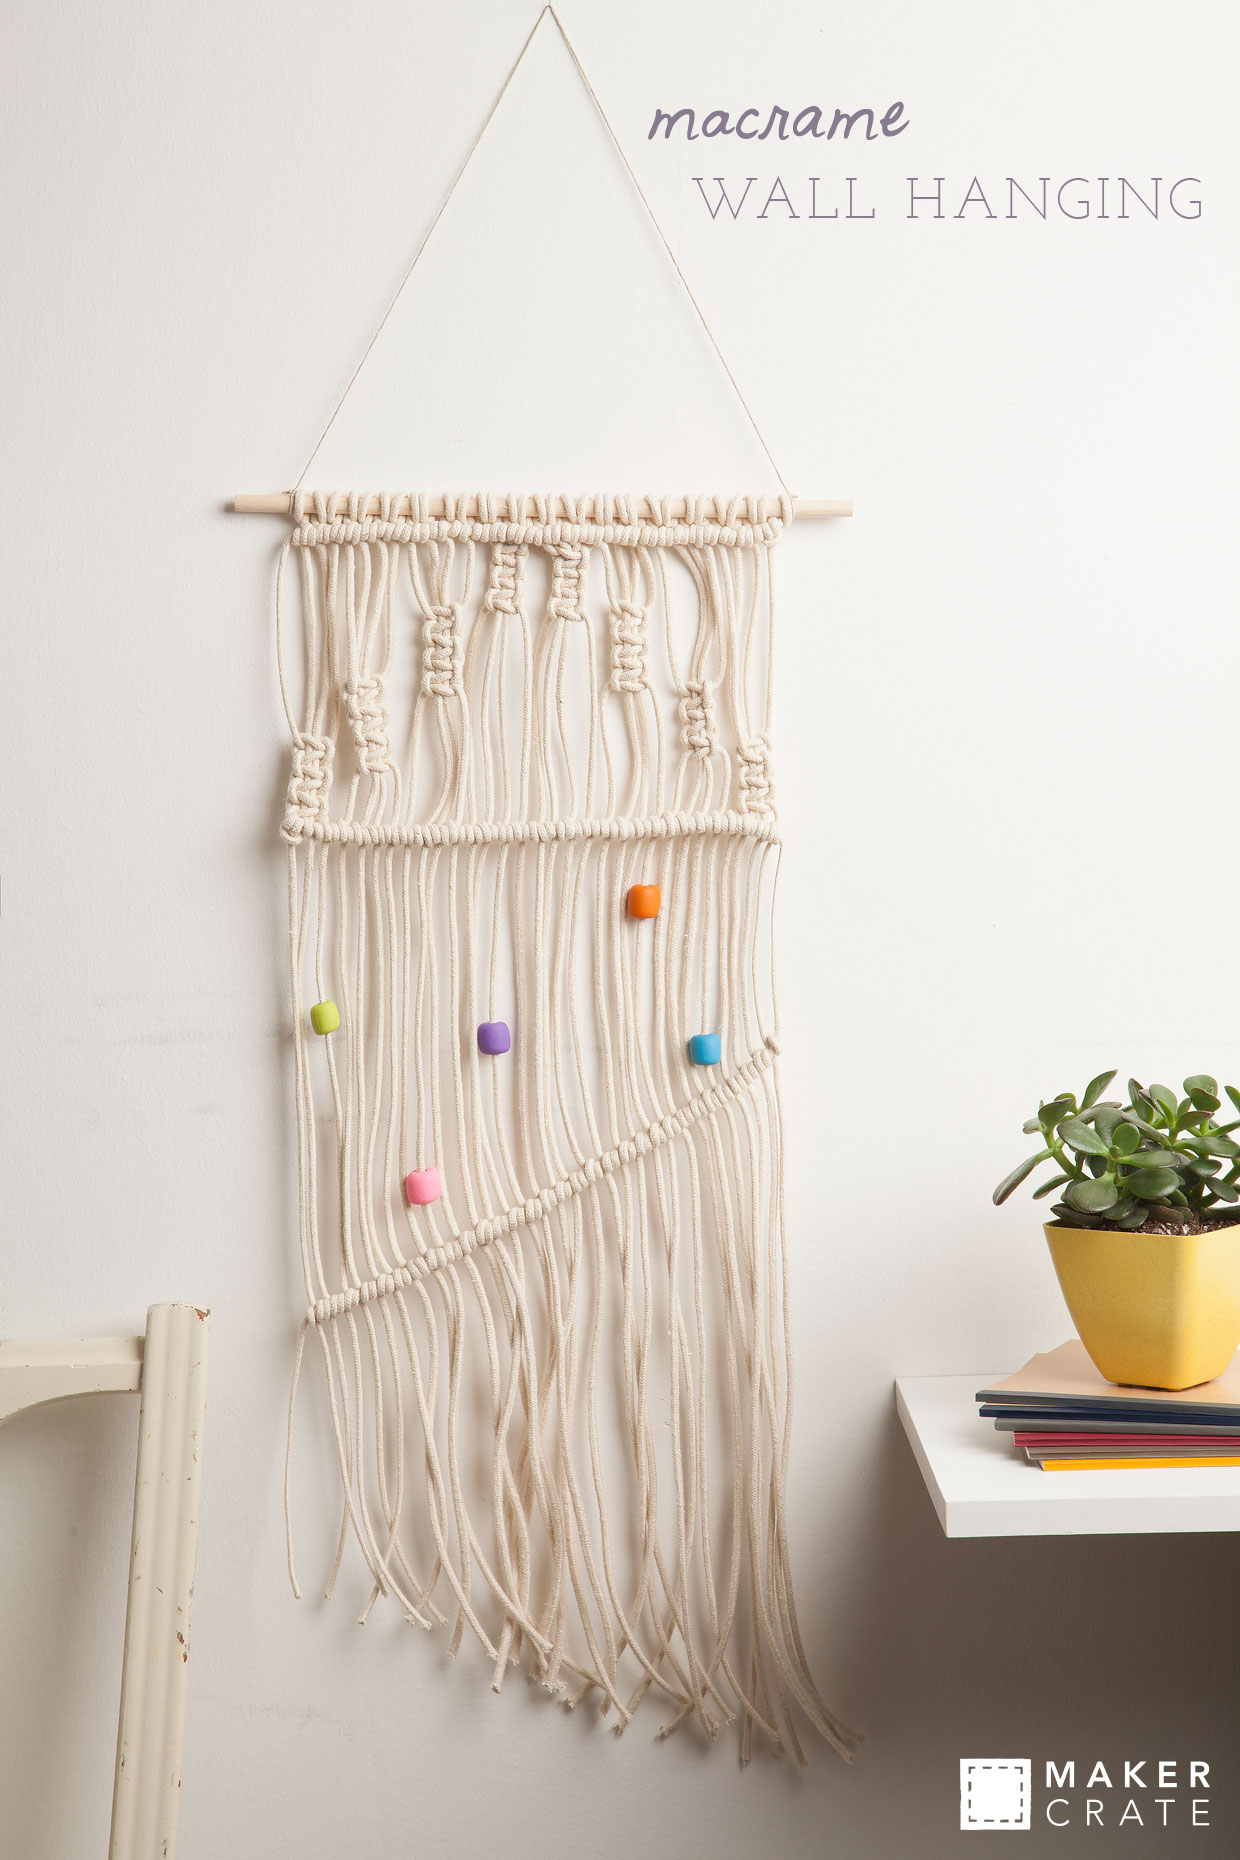 How To Make A Macrame Wall Hanging macrame wall hanging | maker crate